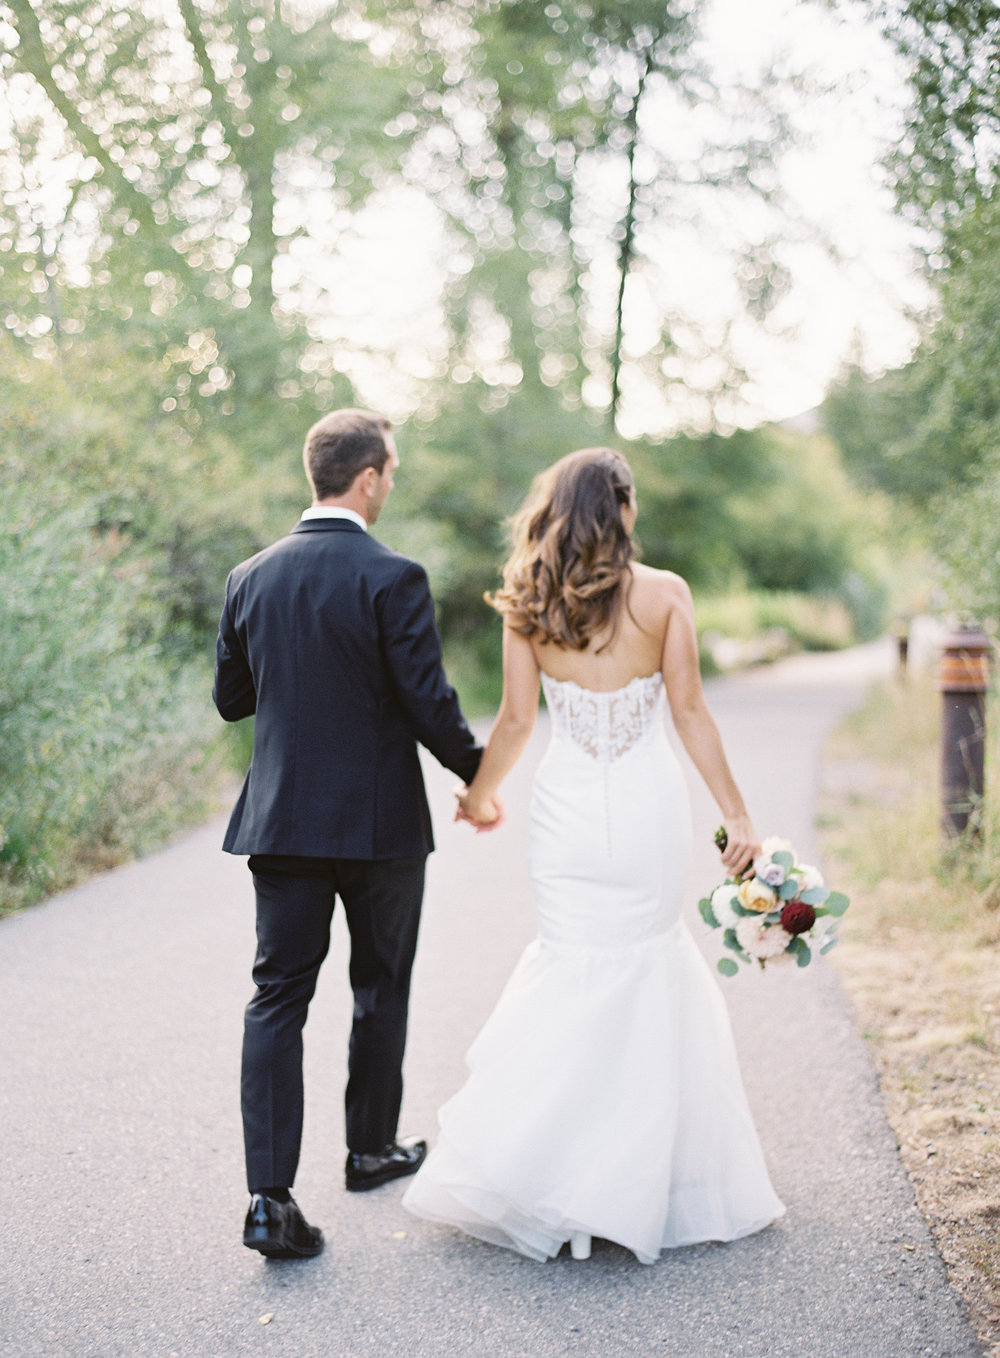 ALLISON + PATRICK - BEAVER CREEK, COLORADO